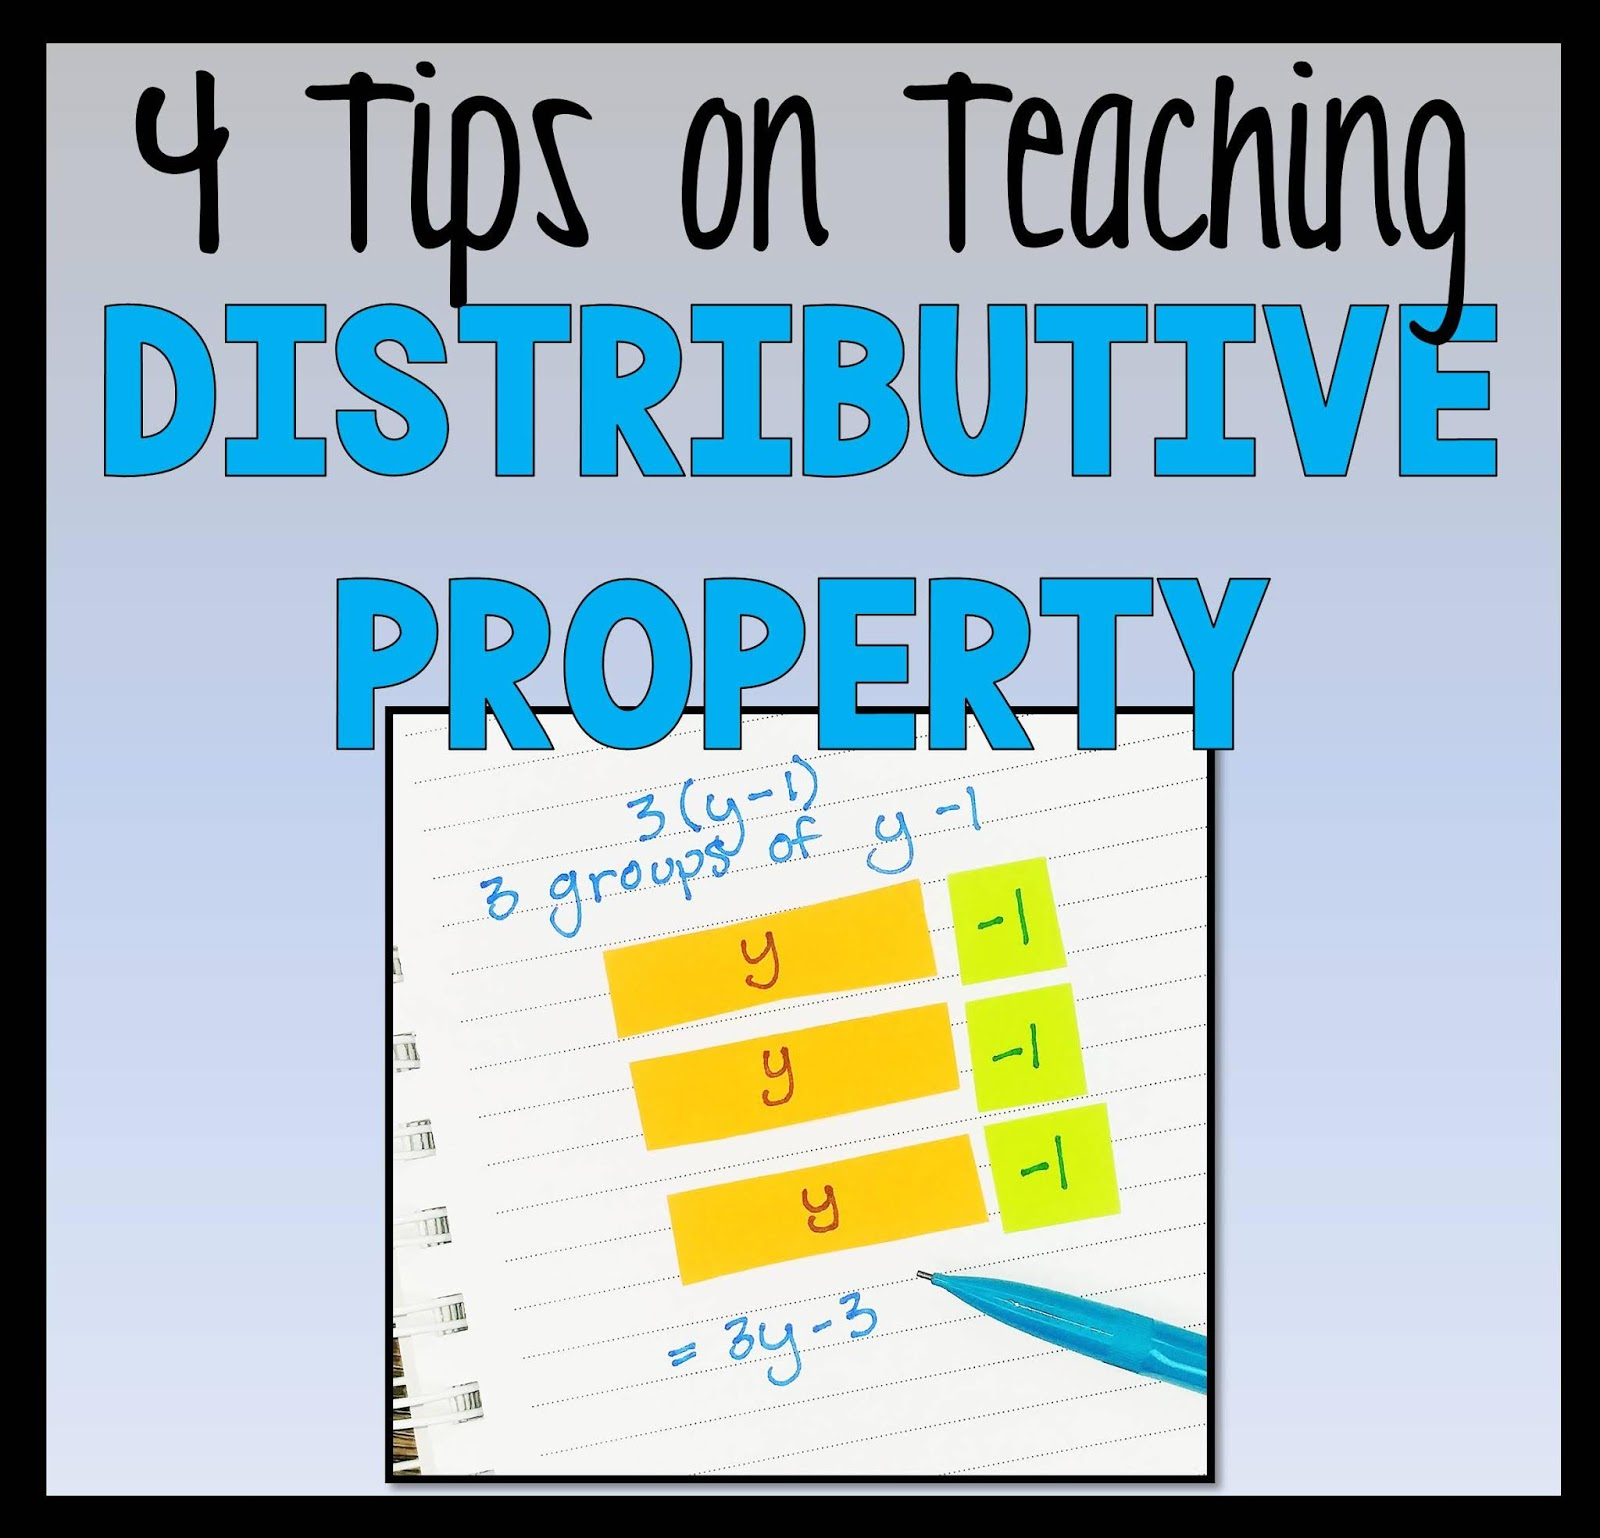 4 Tips On Teaching The Distributive Property